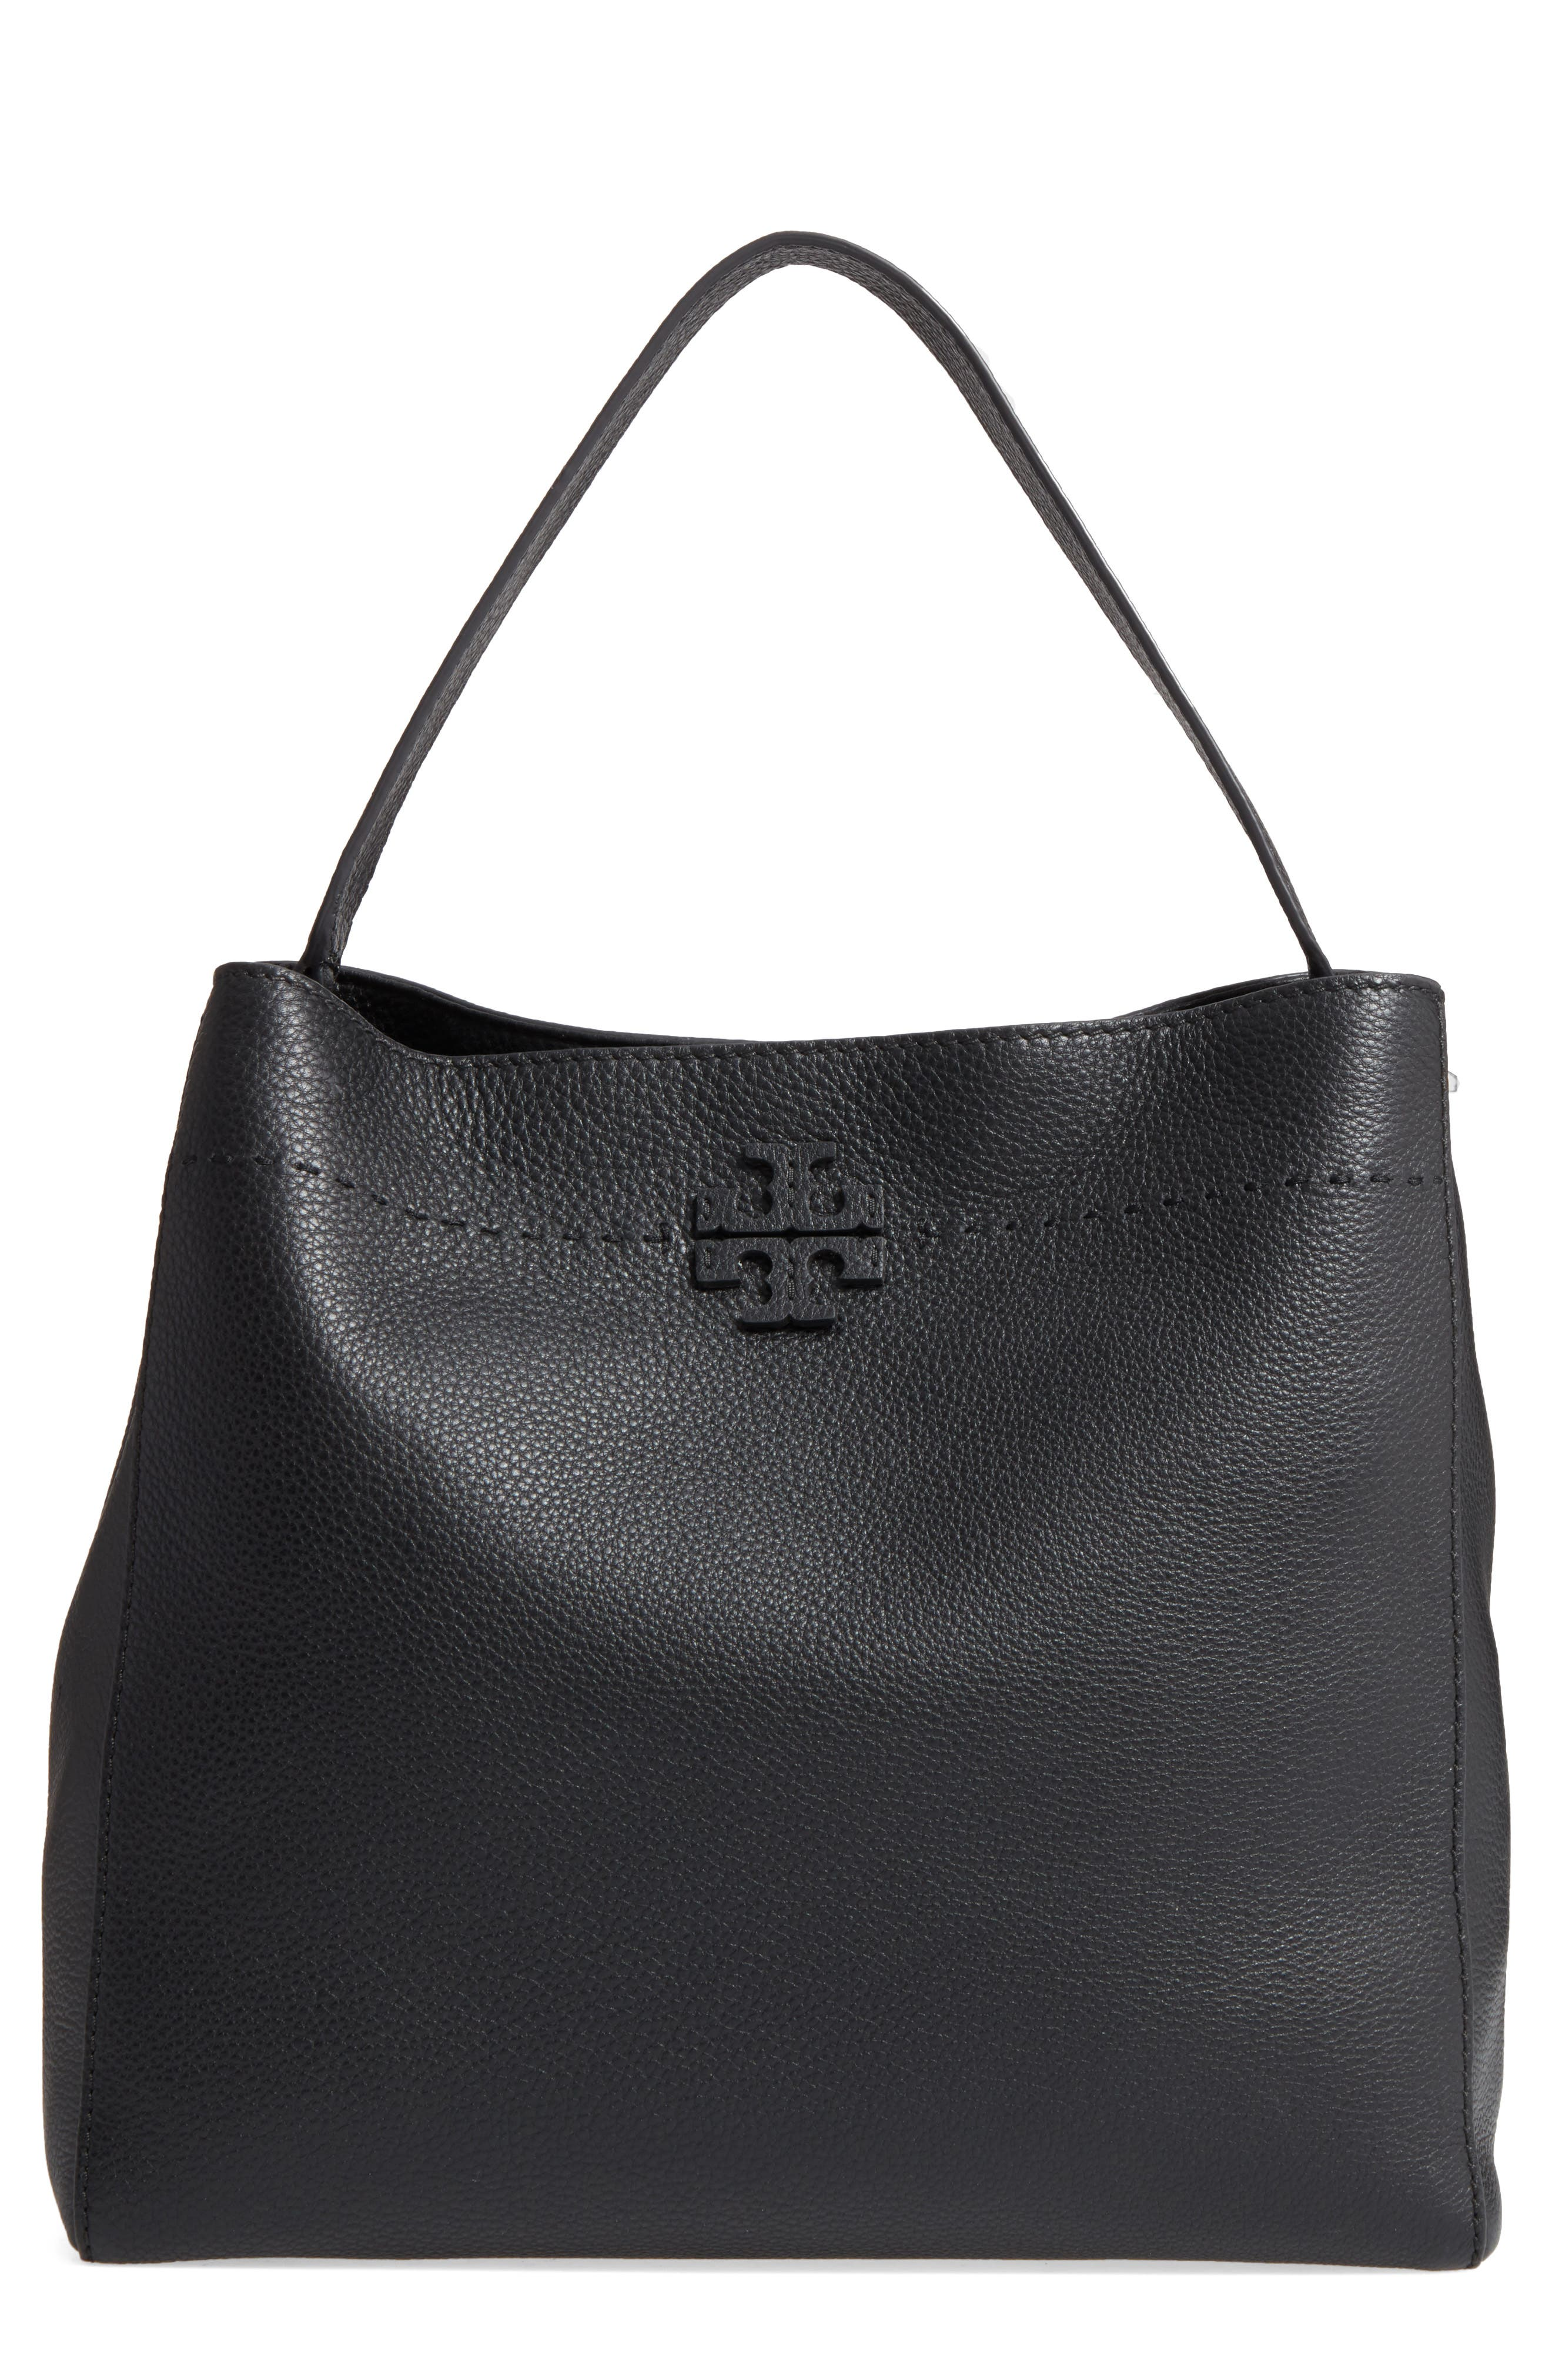 McGraw Leather Hobo,                         Main,                         color, BLACK